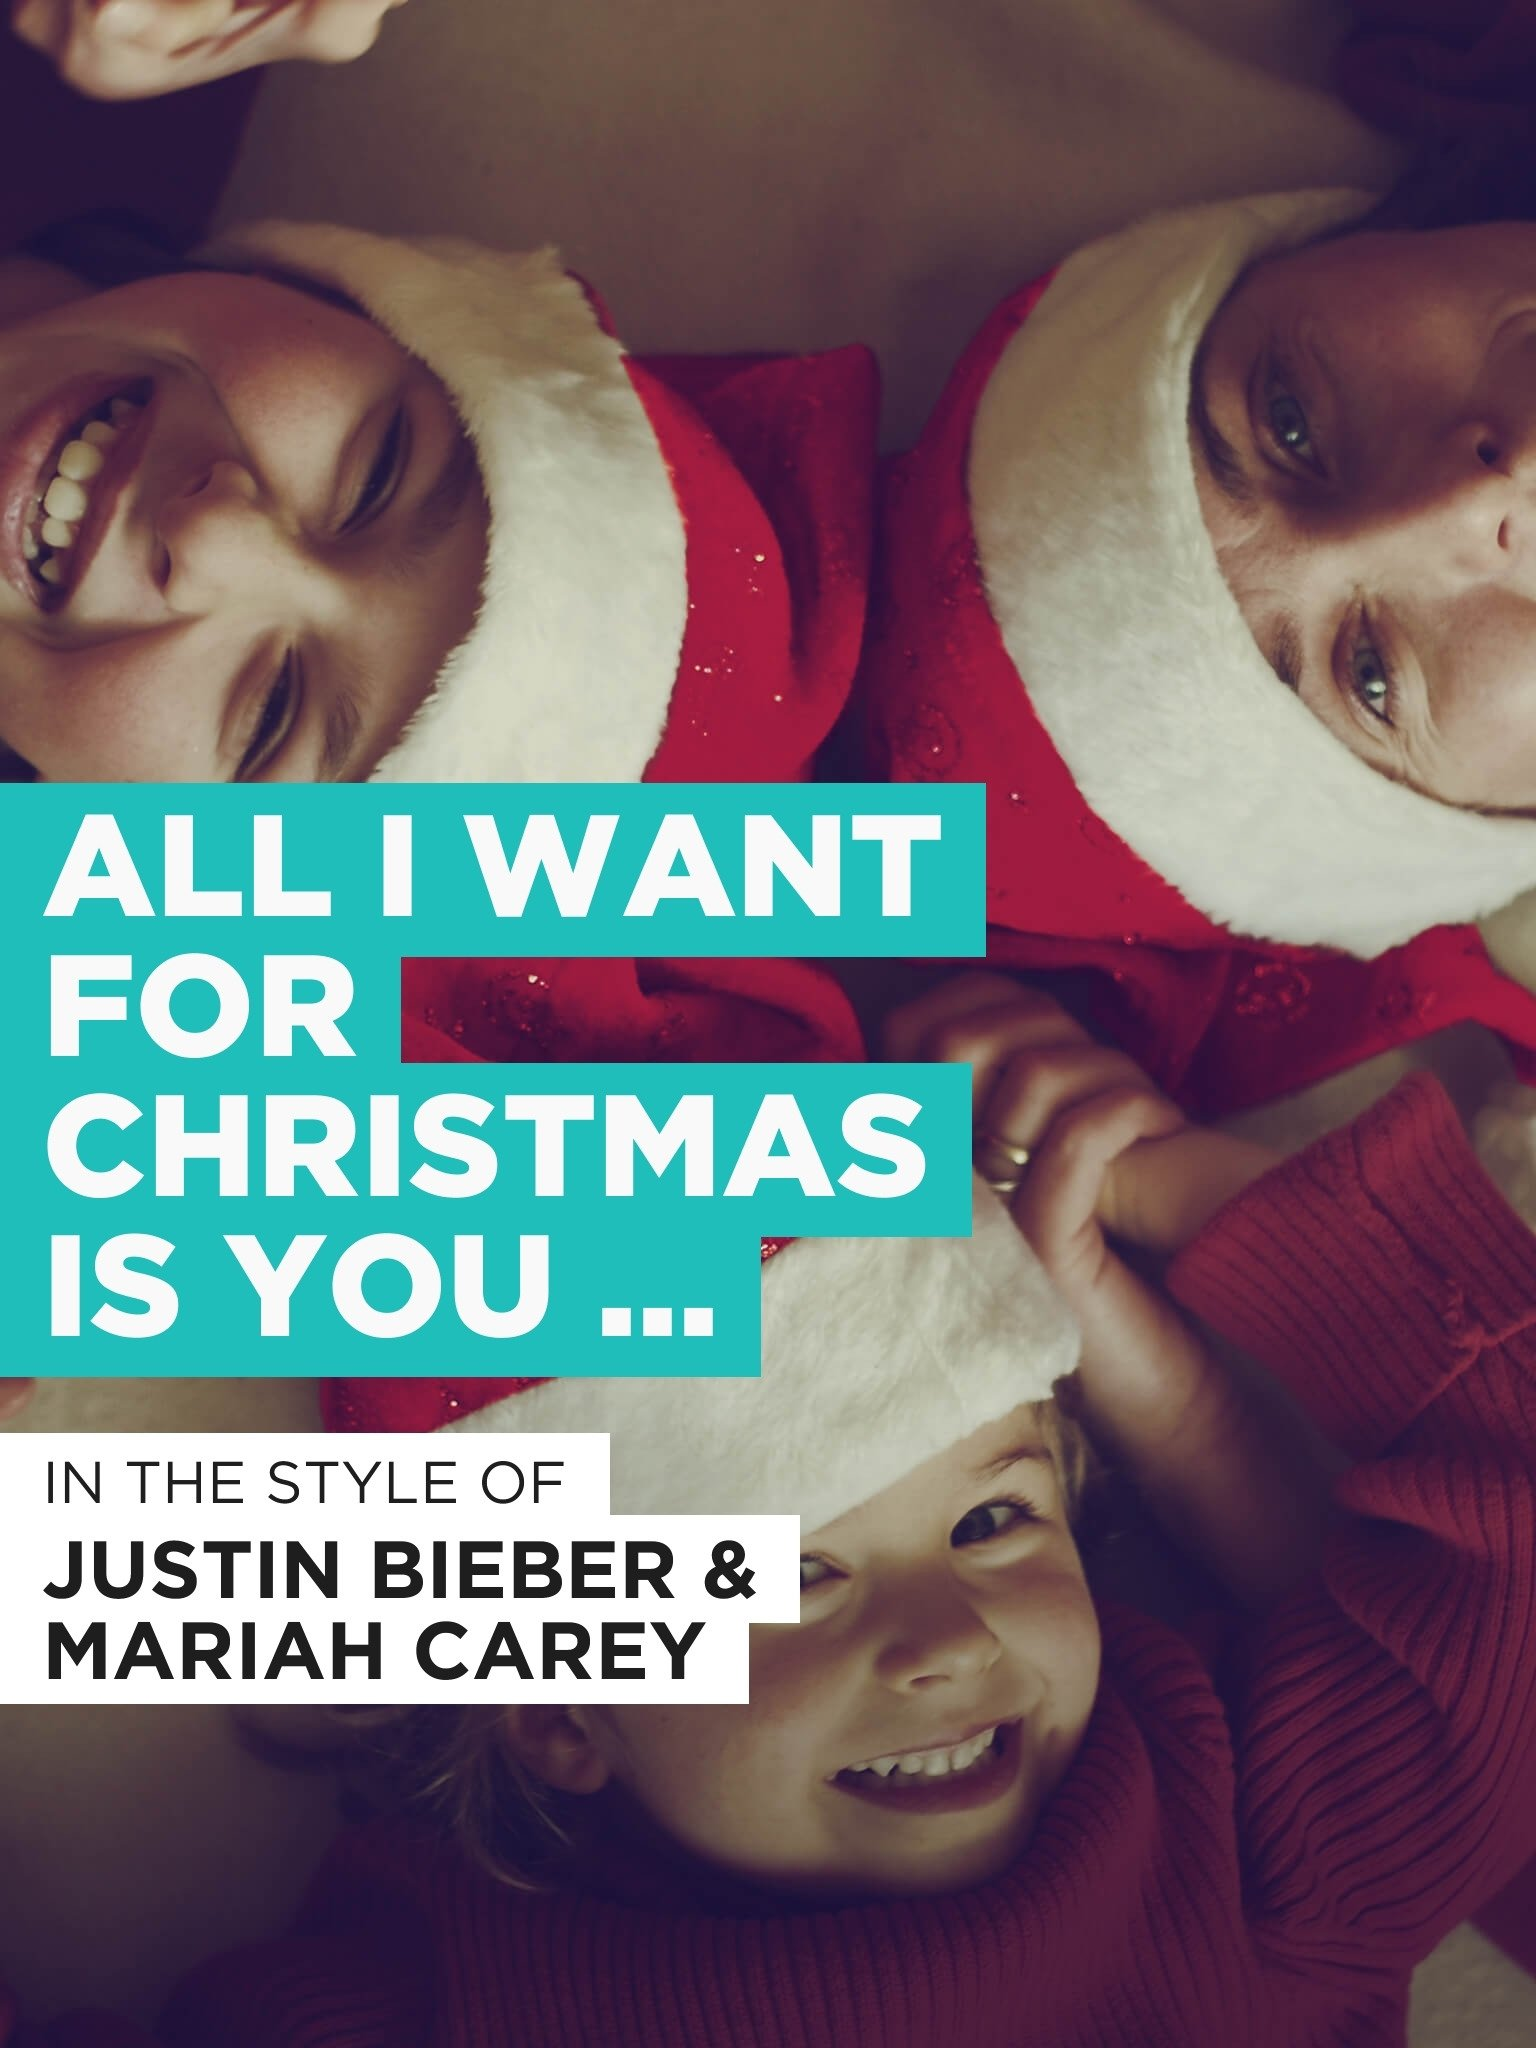 Amazon.com: All I Want For Christmas Is You (Duet): Justin Bieber ...